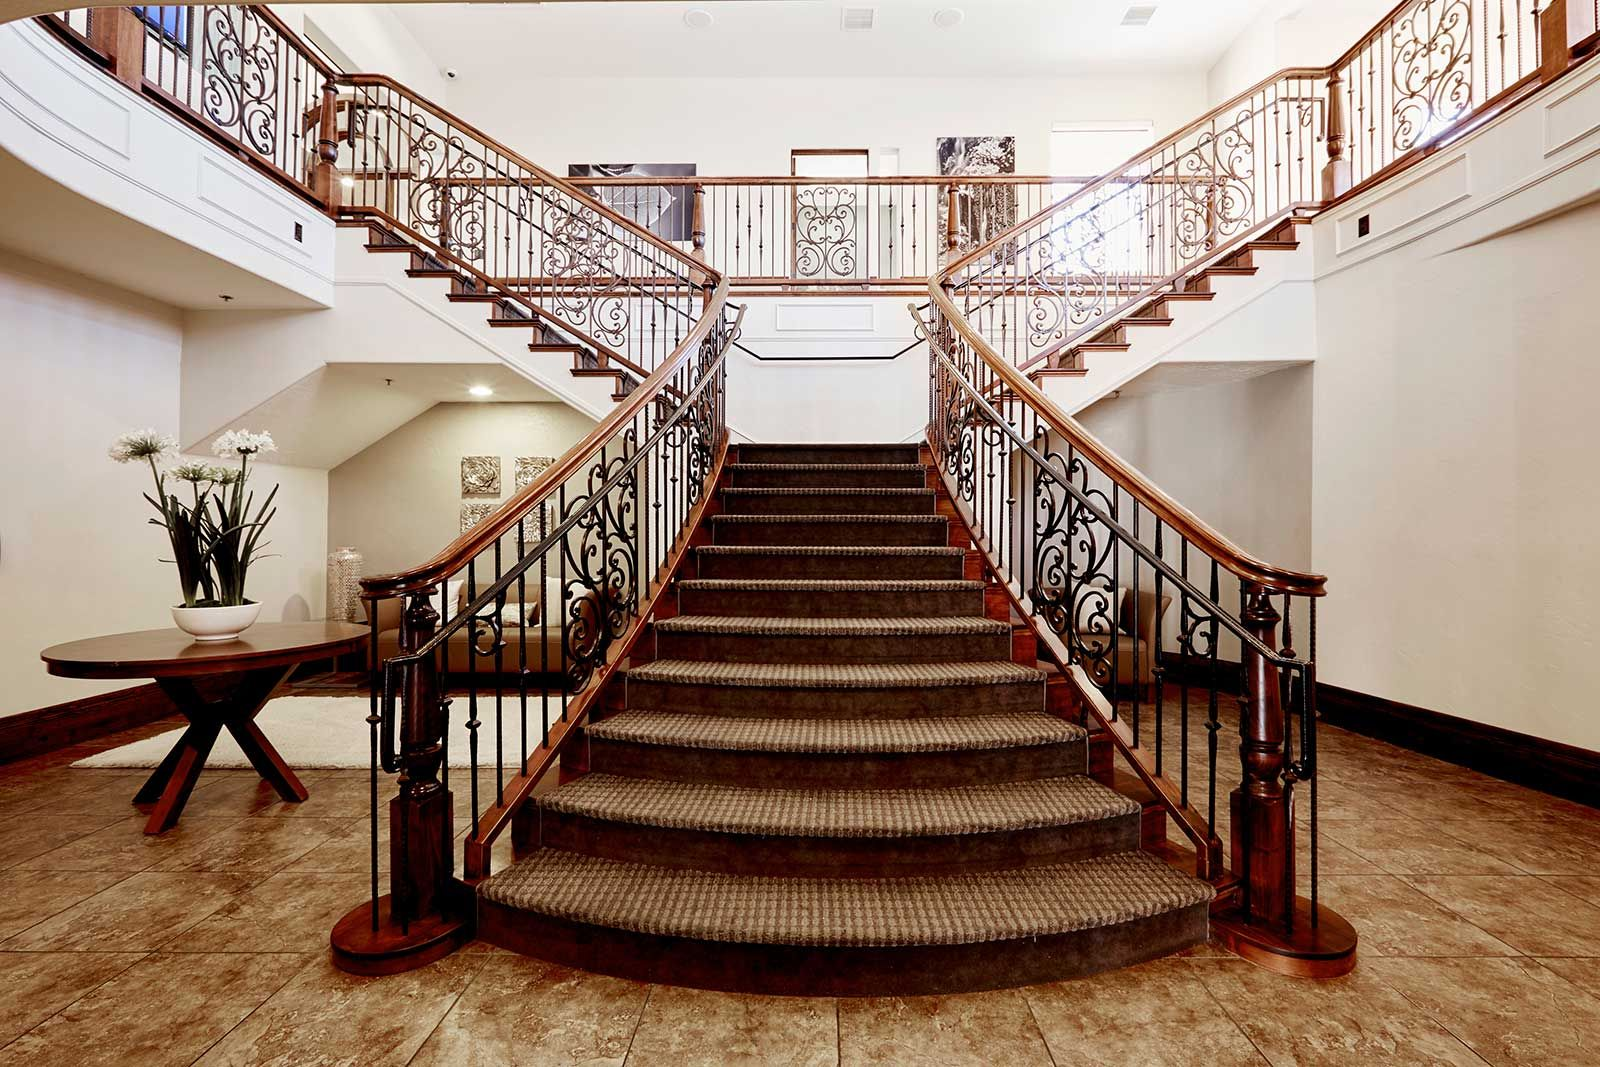 Rod Iron Rails Truly Make This Bifurcated Stair Case Stand Out